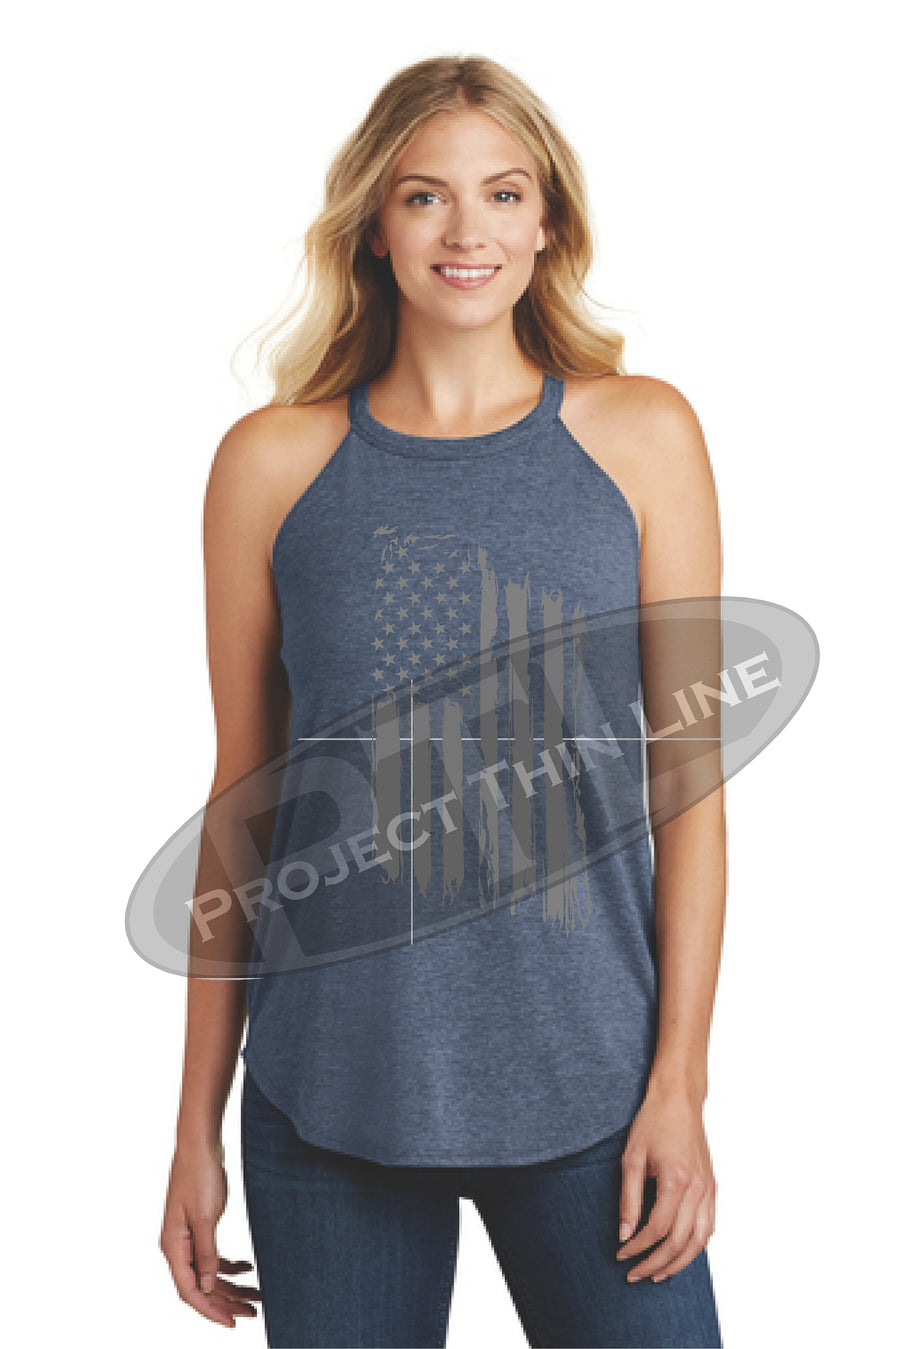 Tattered Tactical - Subdued American Flag Rocker Tank Top - FRONT